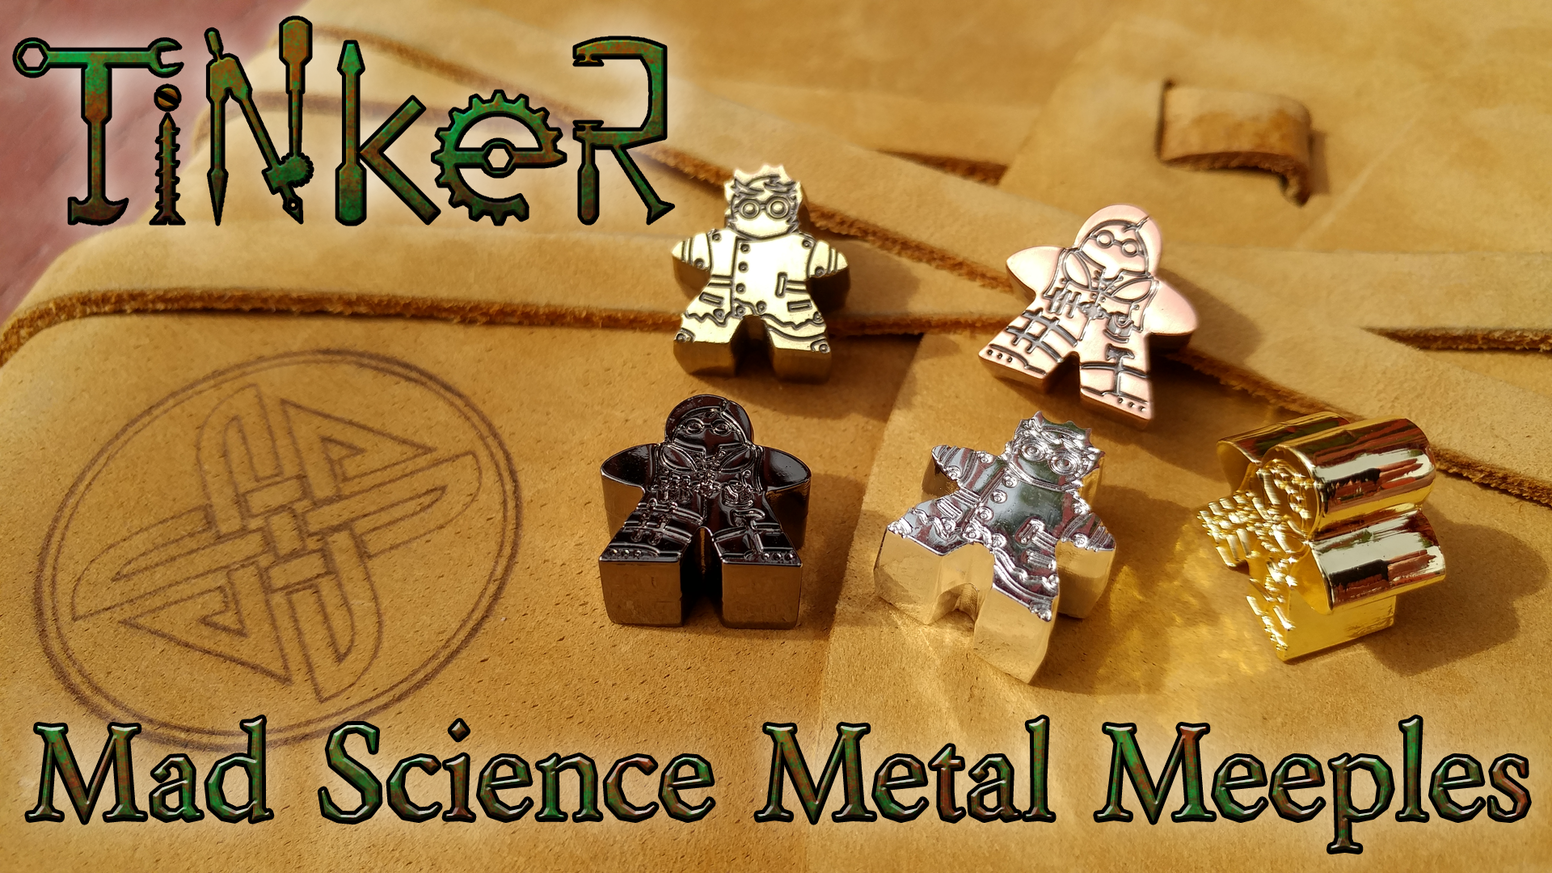 Mad Scientist and Tinkerer Mad Science Metal Meeples, for those times when you need More Science!!